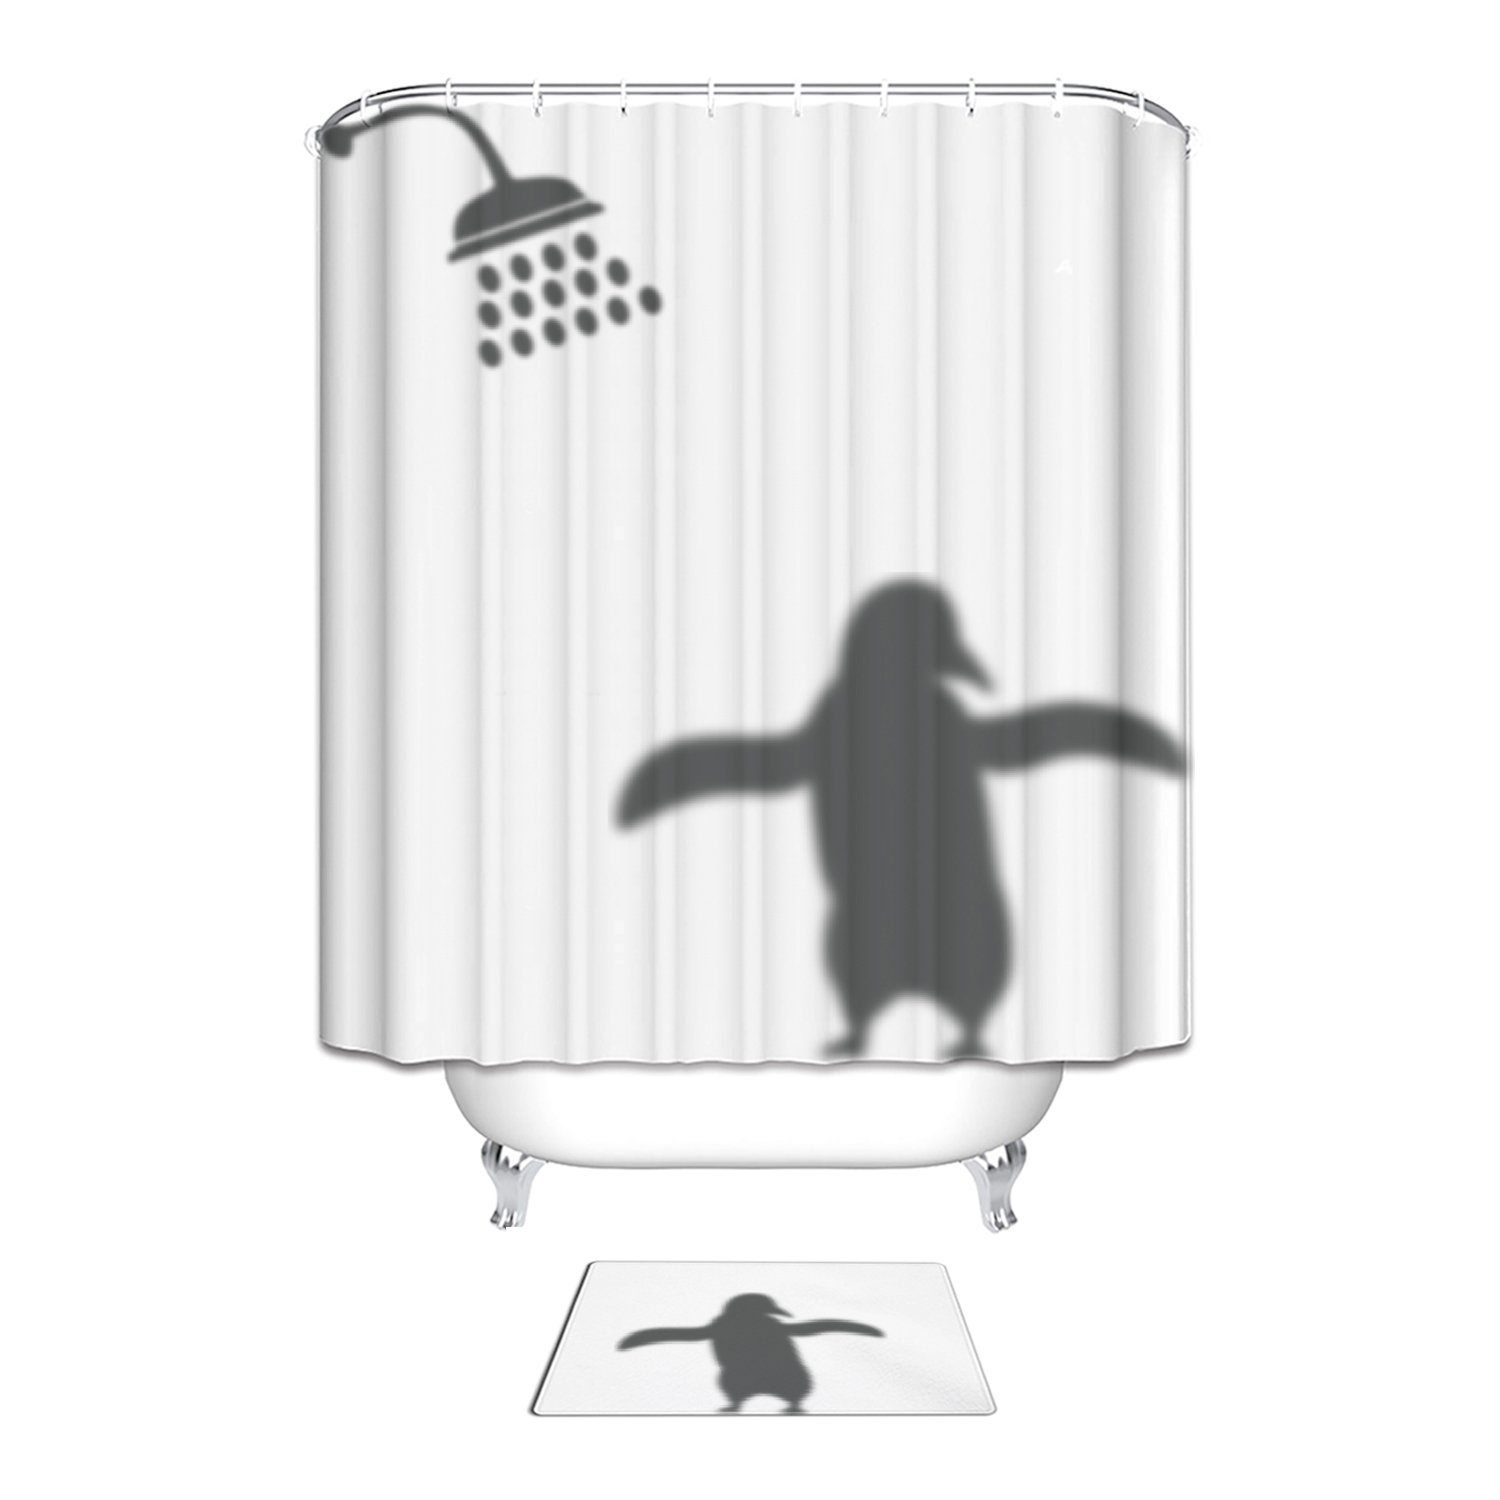 Animals Penguin Shadow Funny Waterproof Polyester Fabric Bathroom Shower Curtain with Floor Mats Rugs Bath Decorations Sets 48 x 72